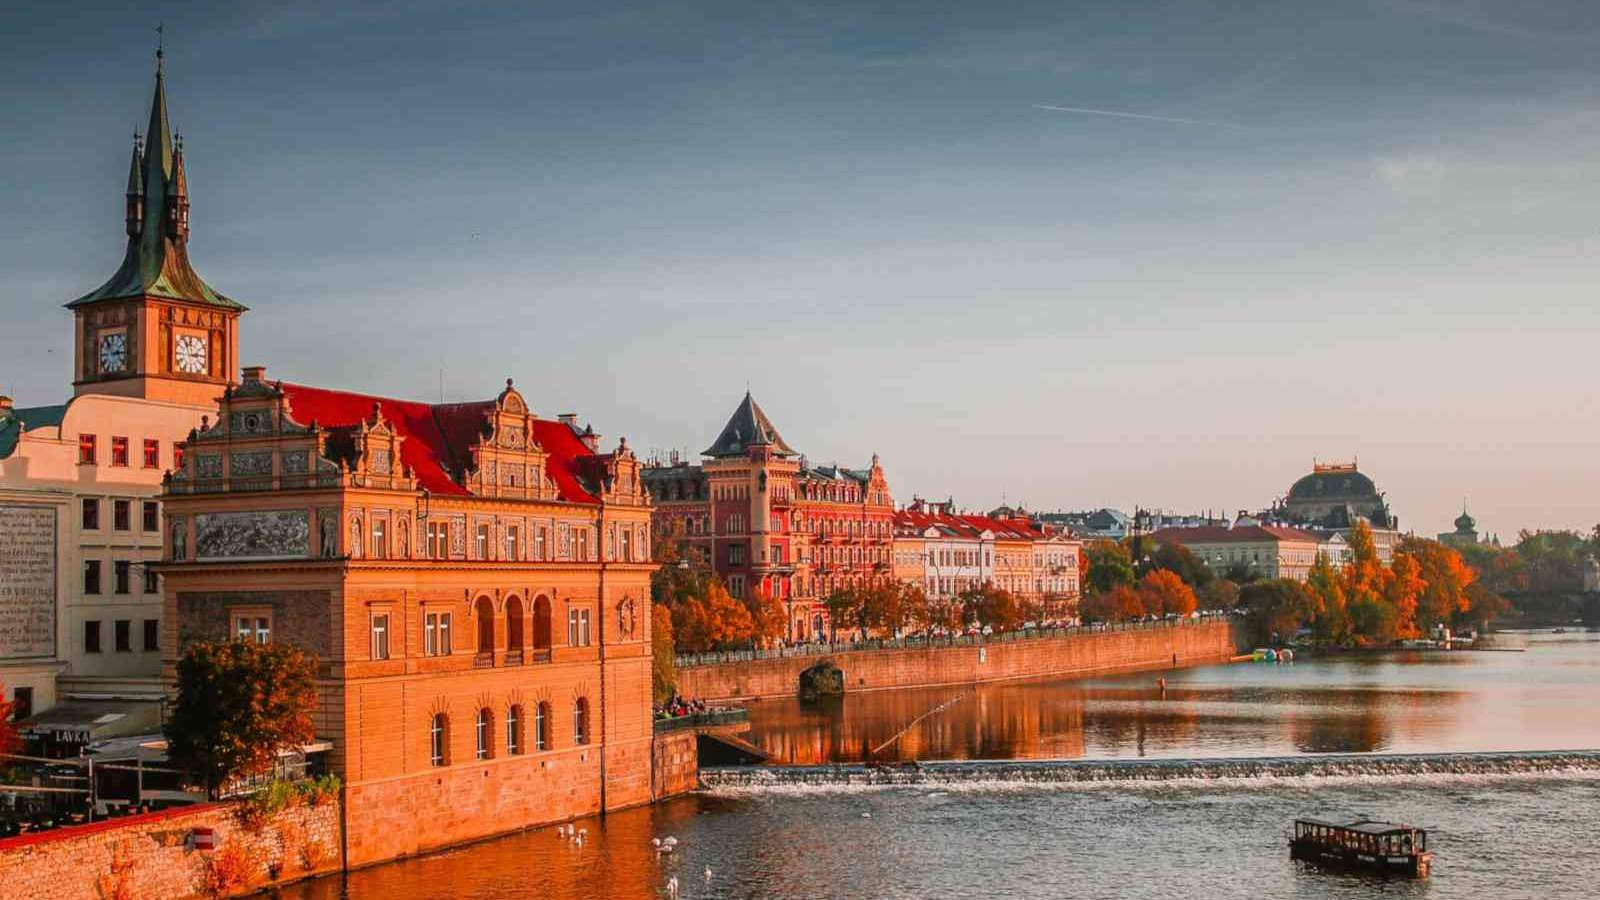 Cruise on the river Danube between Prague and Budapest with Brand G